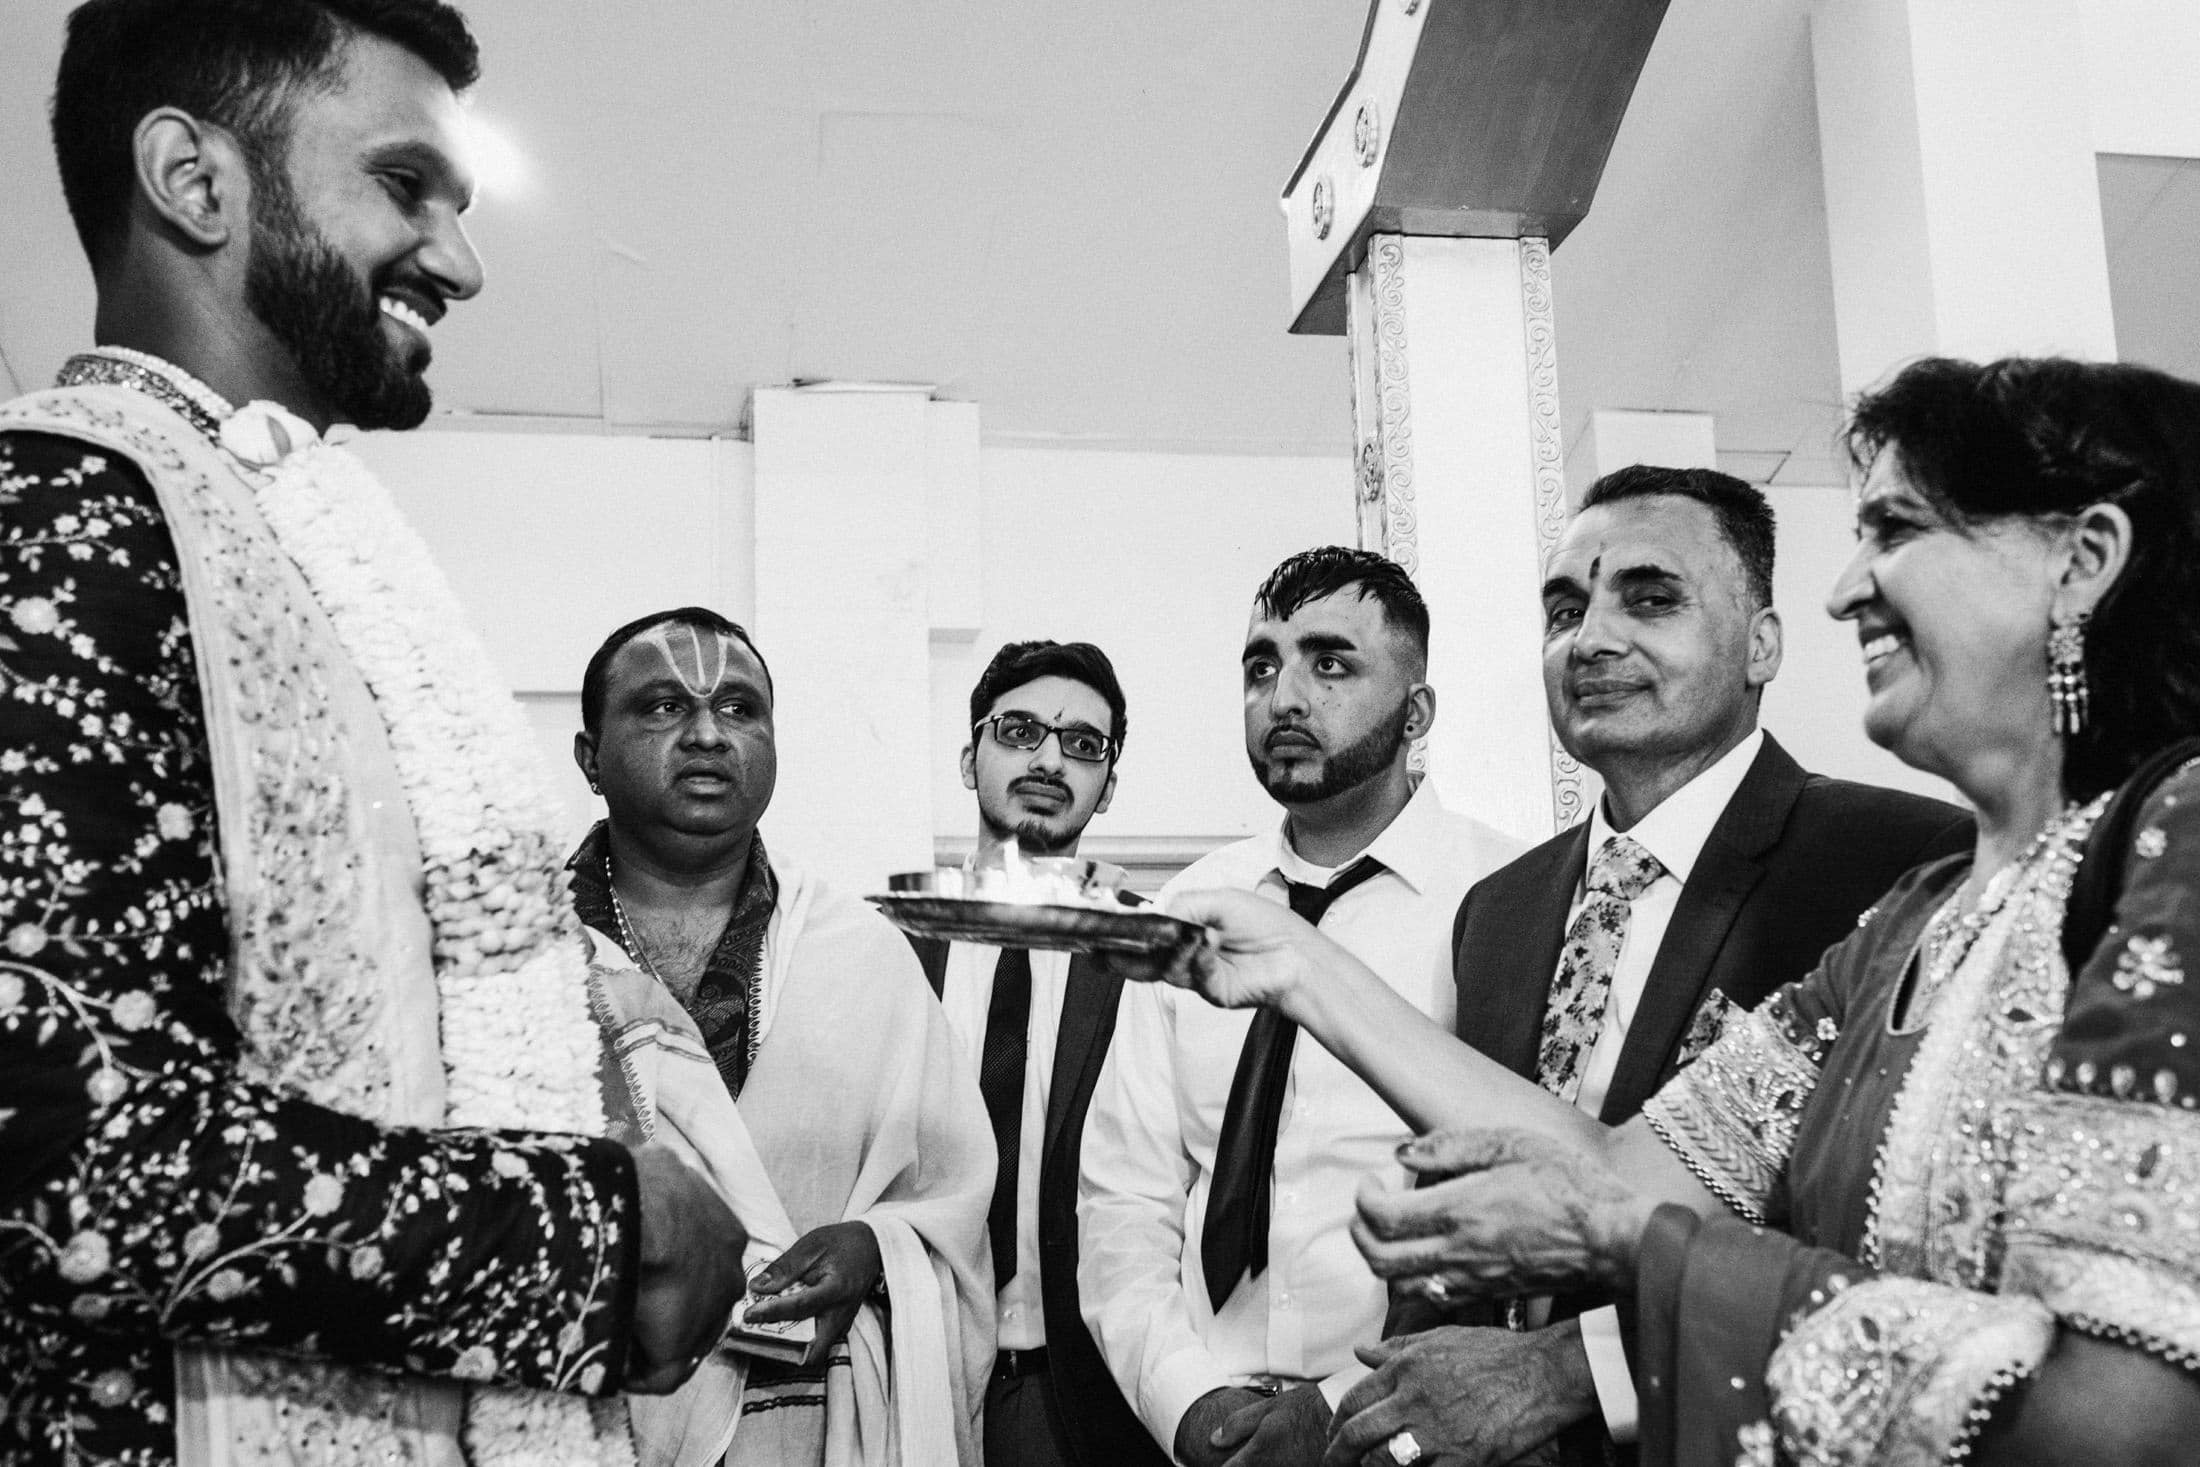 Black and white indian groom ceremony at Shri Venkateswara Balaji Temple